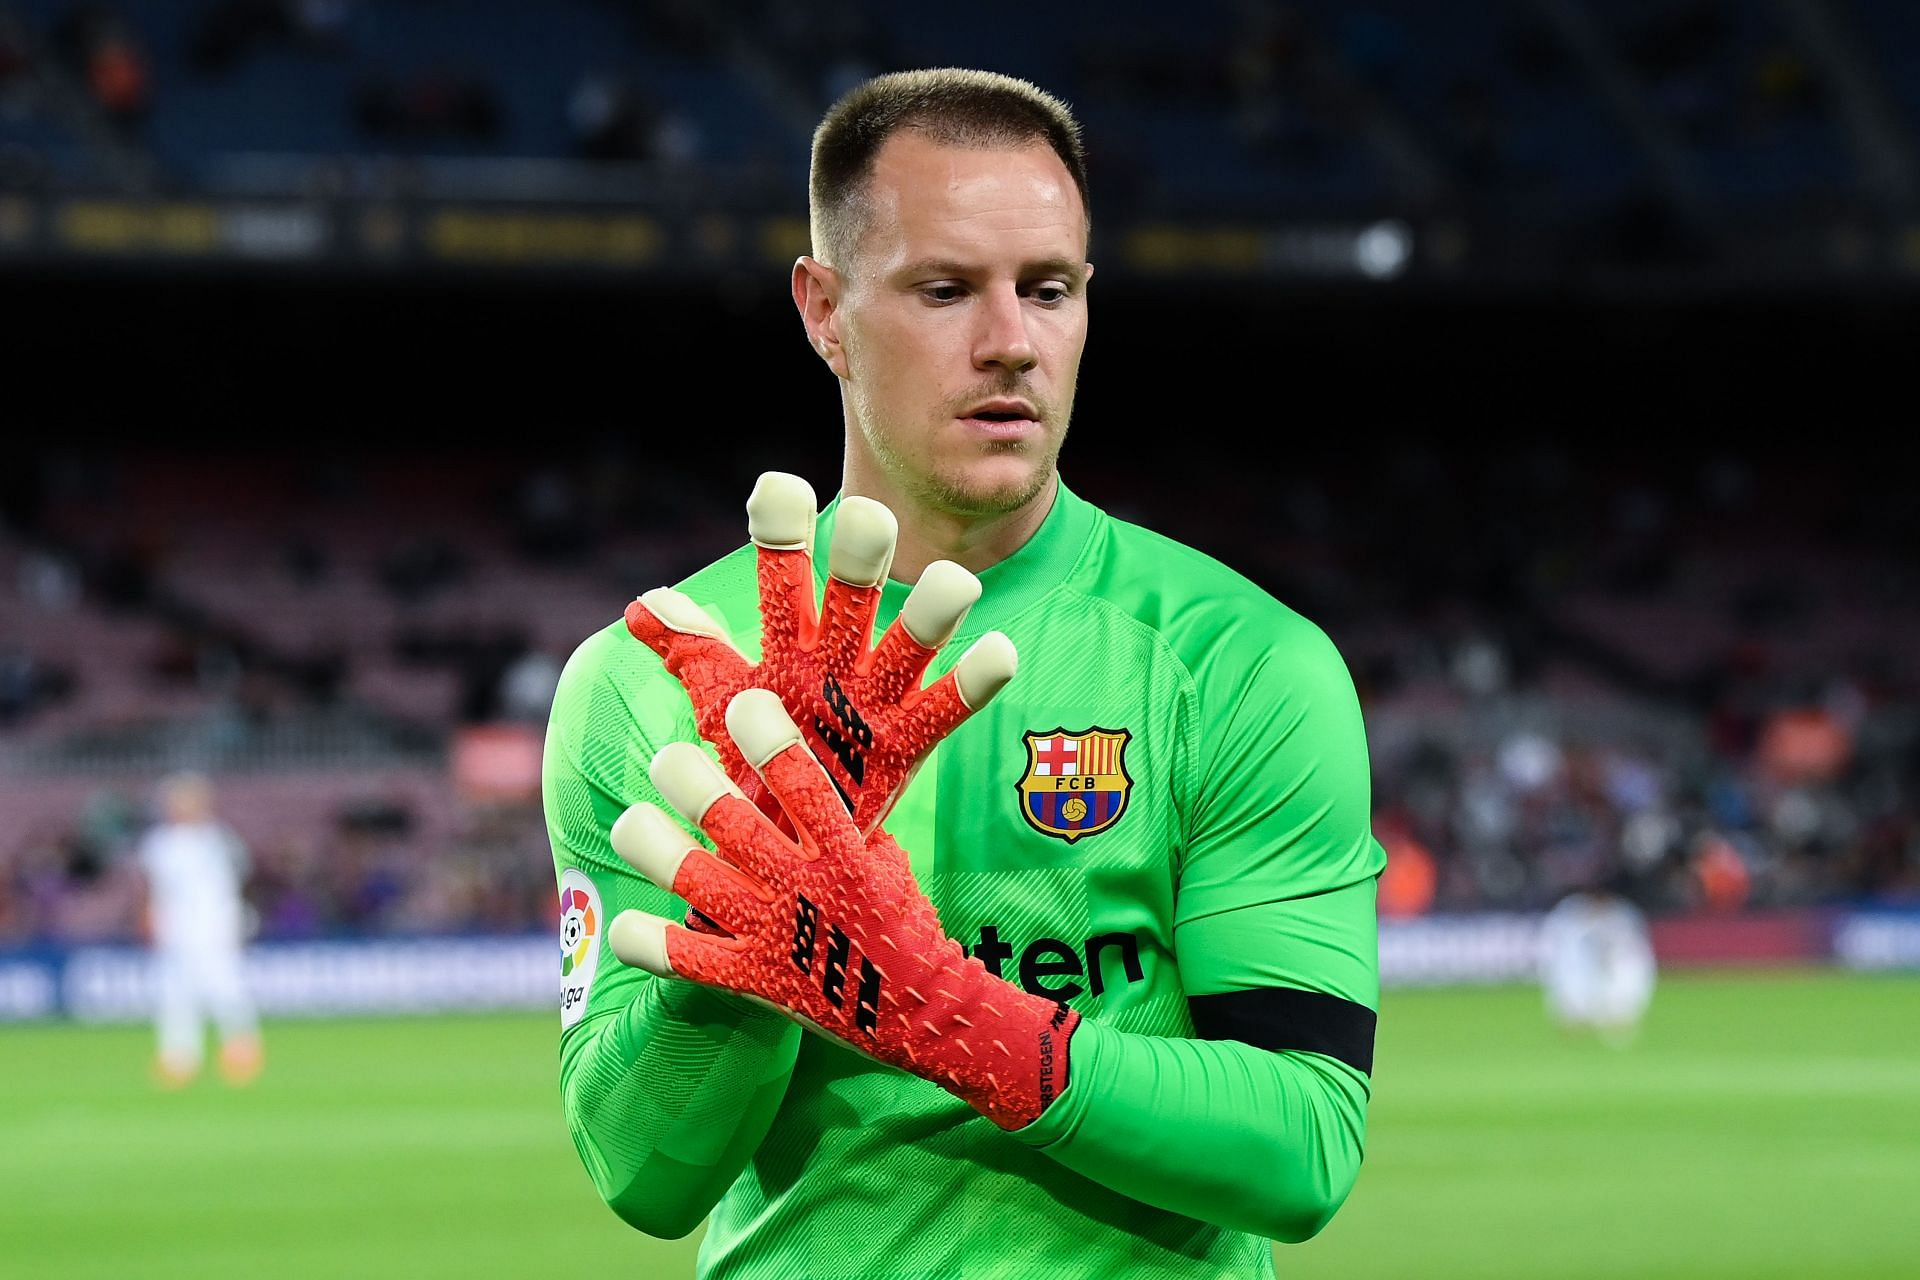 Marc-Andre ter Stegen has been a key player for Barcelona.